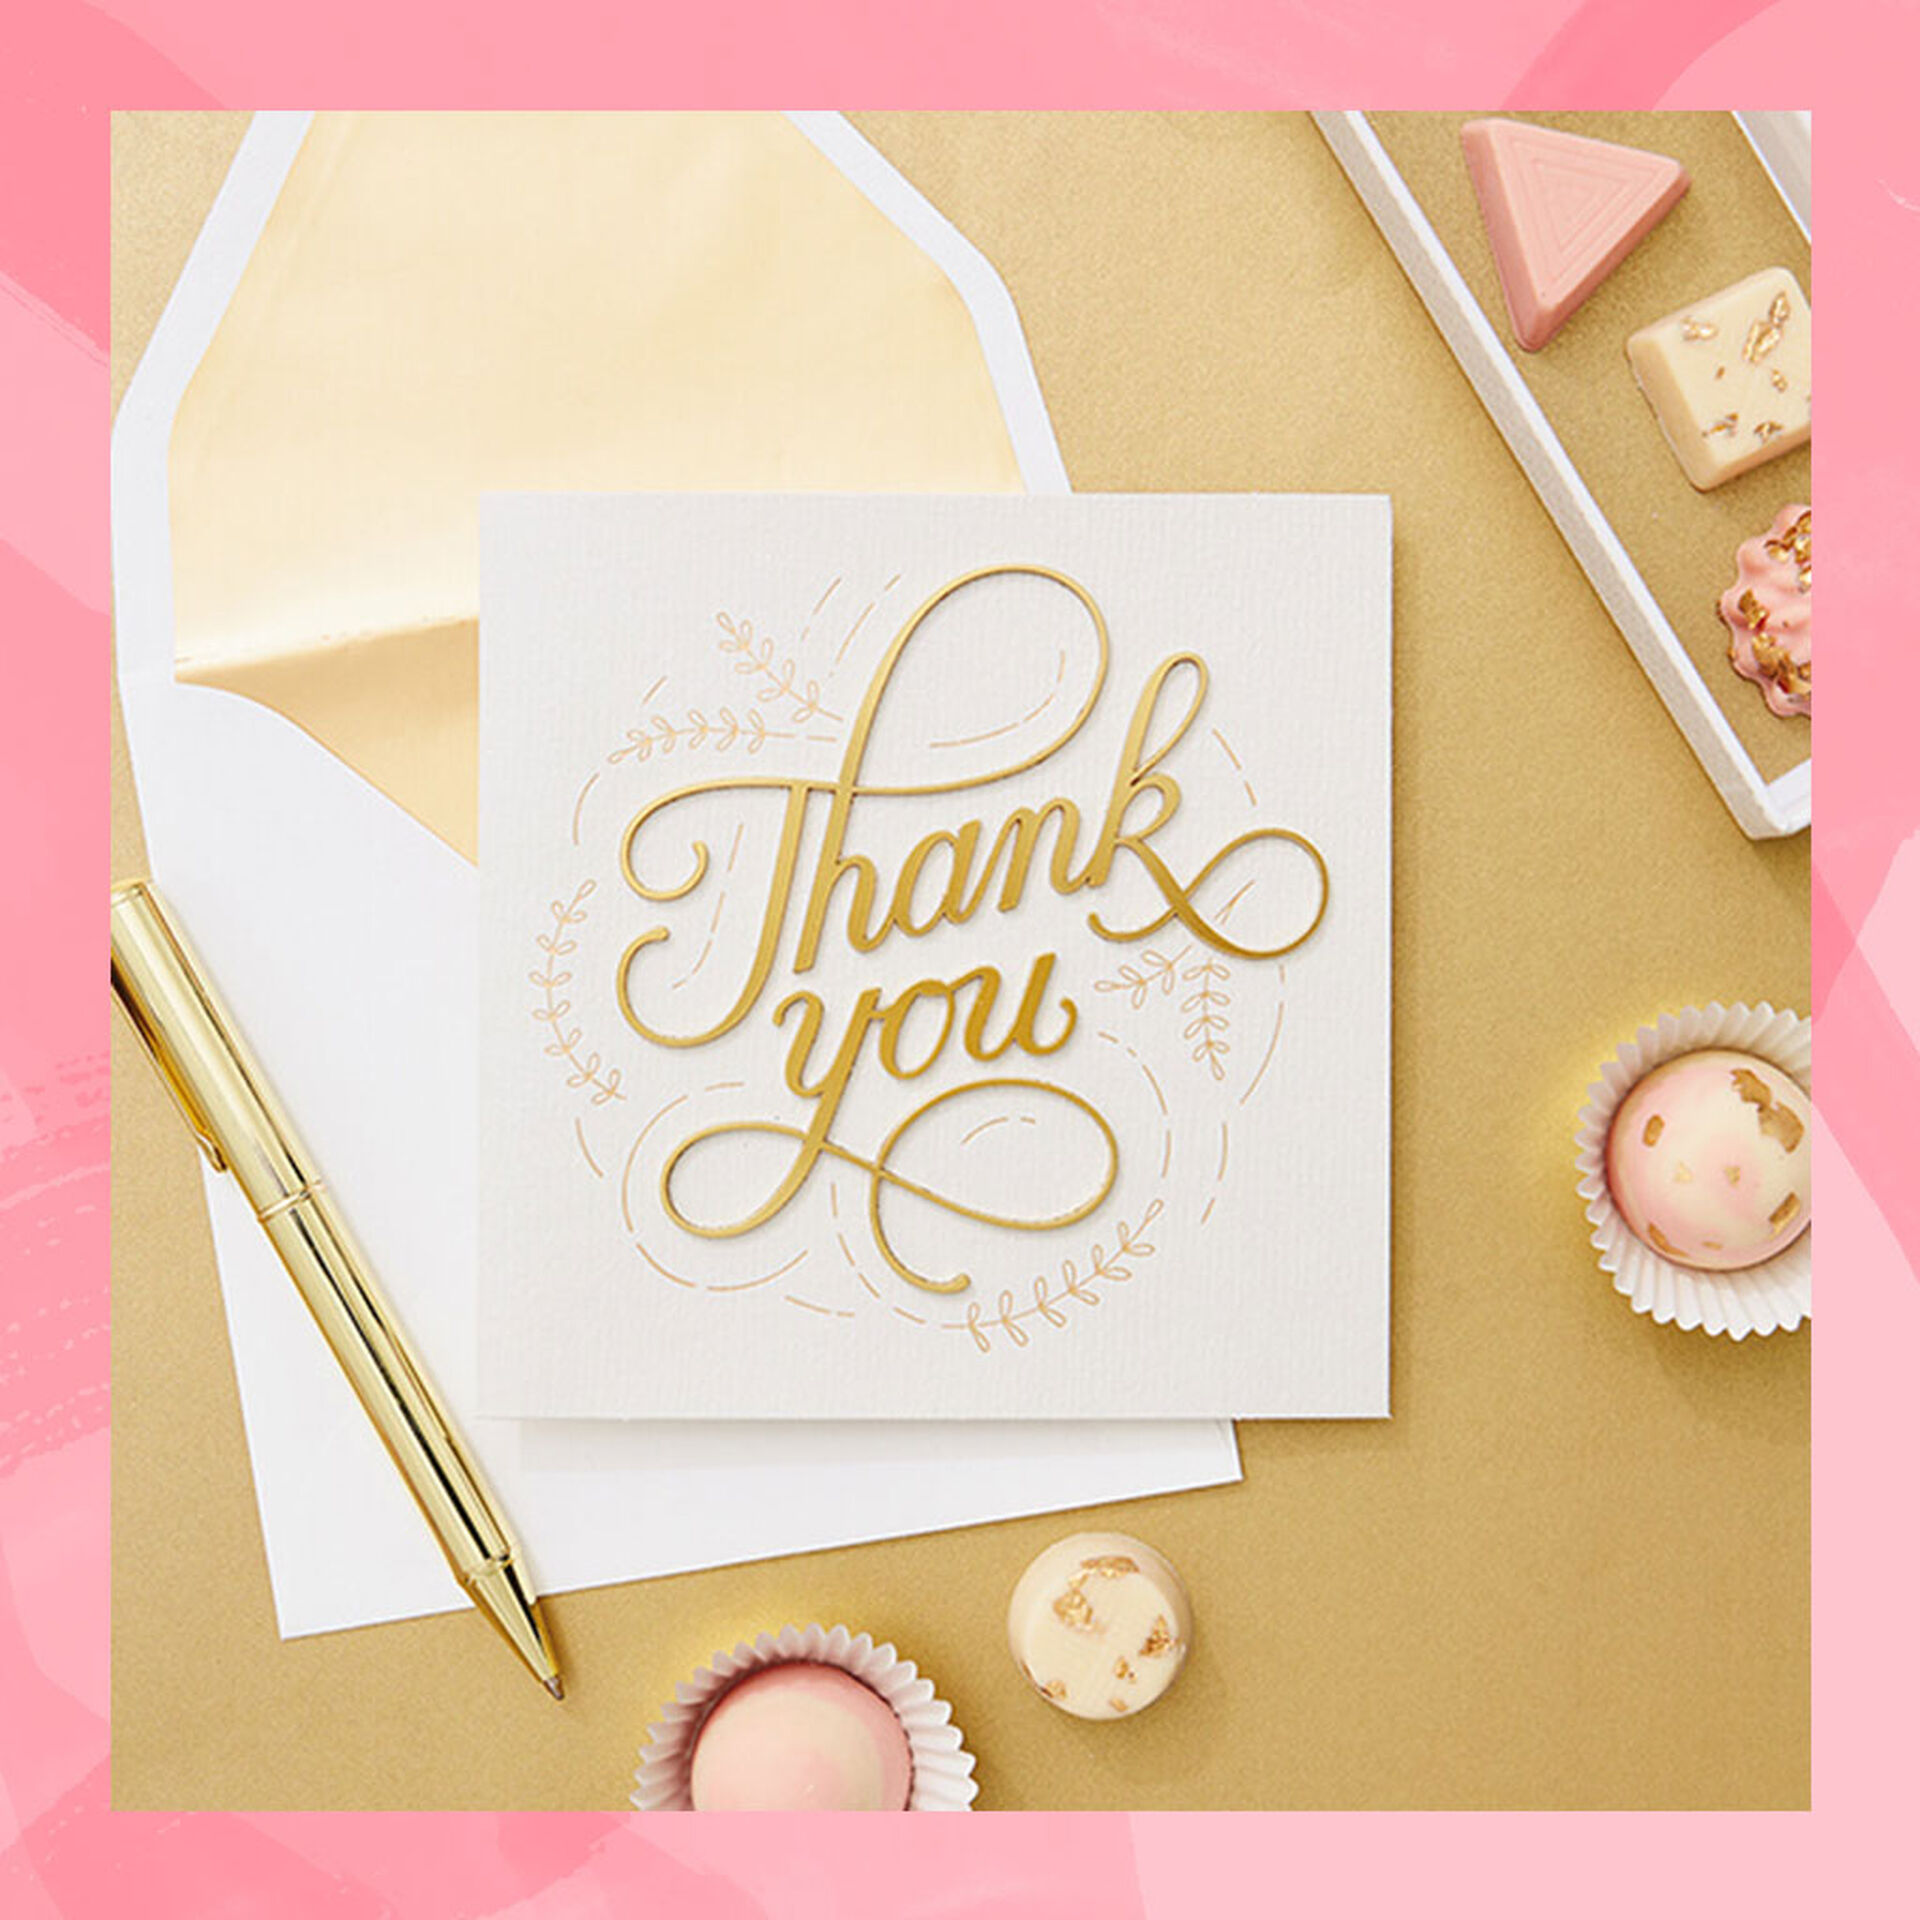 Thank You Messages: What to Write in a Thank-You Card  Hallmark